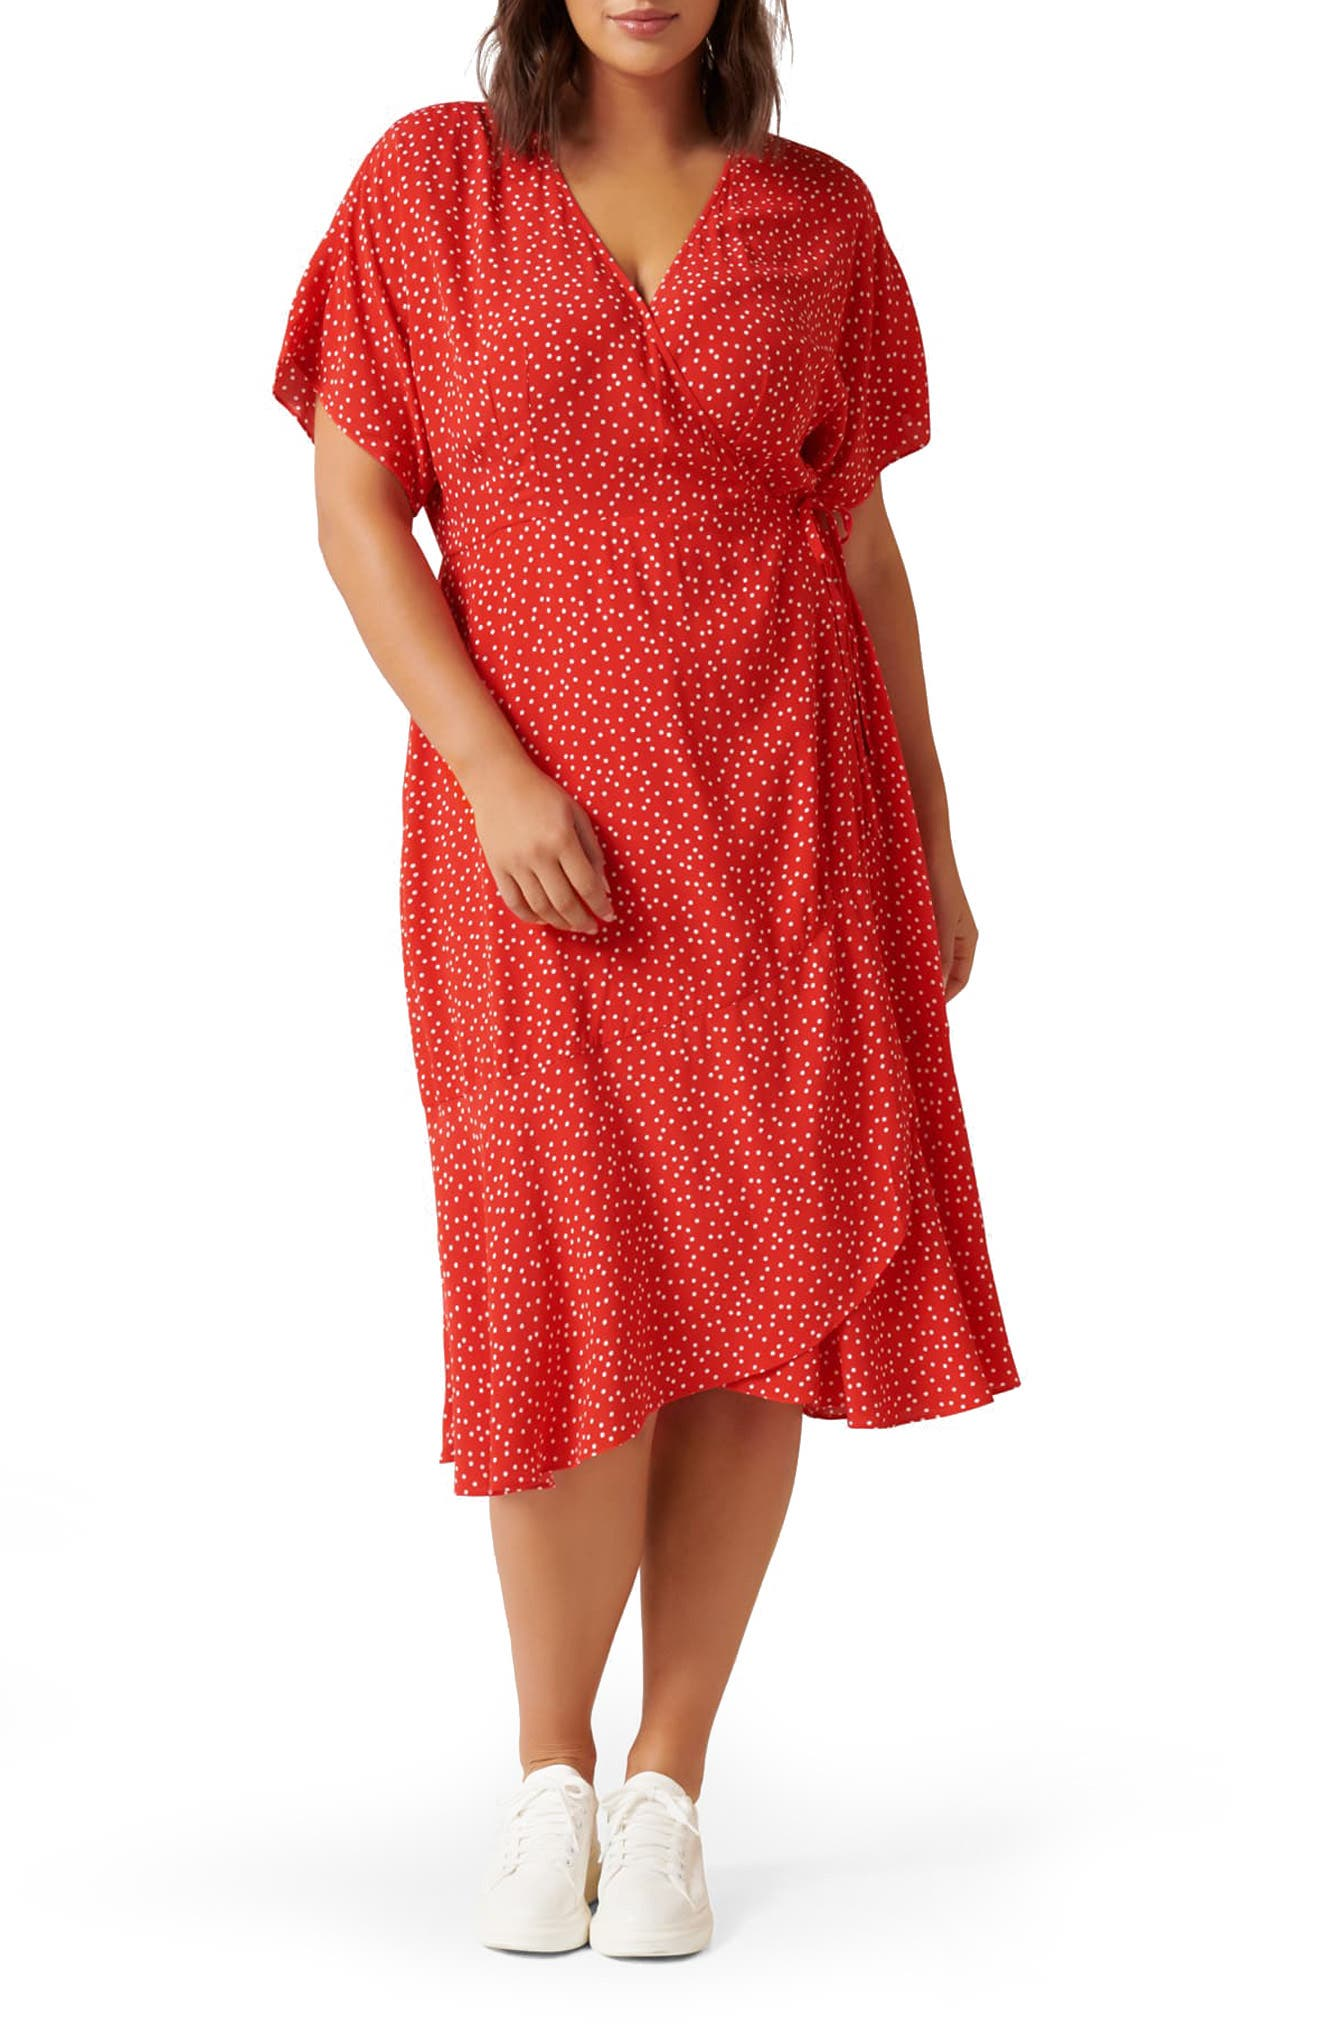 1980s Clothing, Fashion | 80s Style Clothes Plus Size Womens Ever New Clementine Dot Print Wrap Dress Size 18W - Red $145.00 AT vintagedancer.com